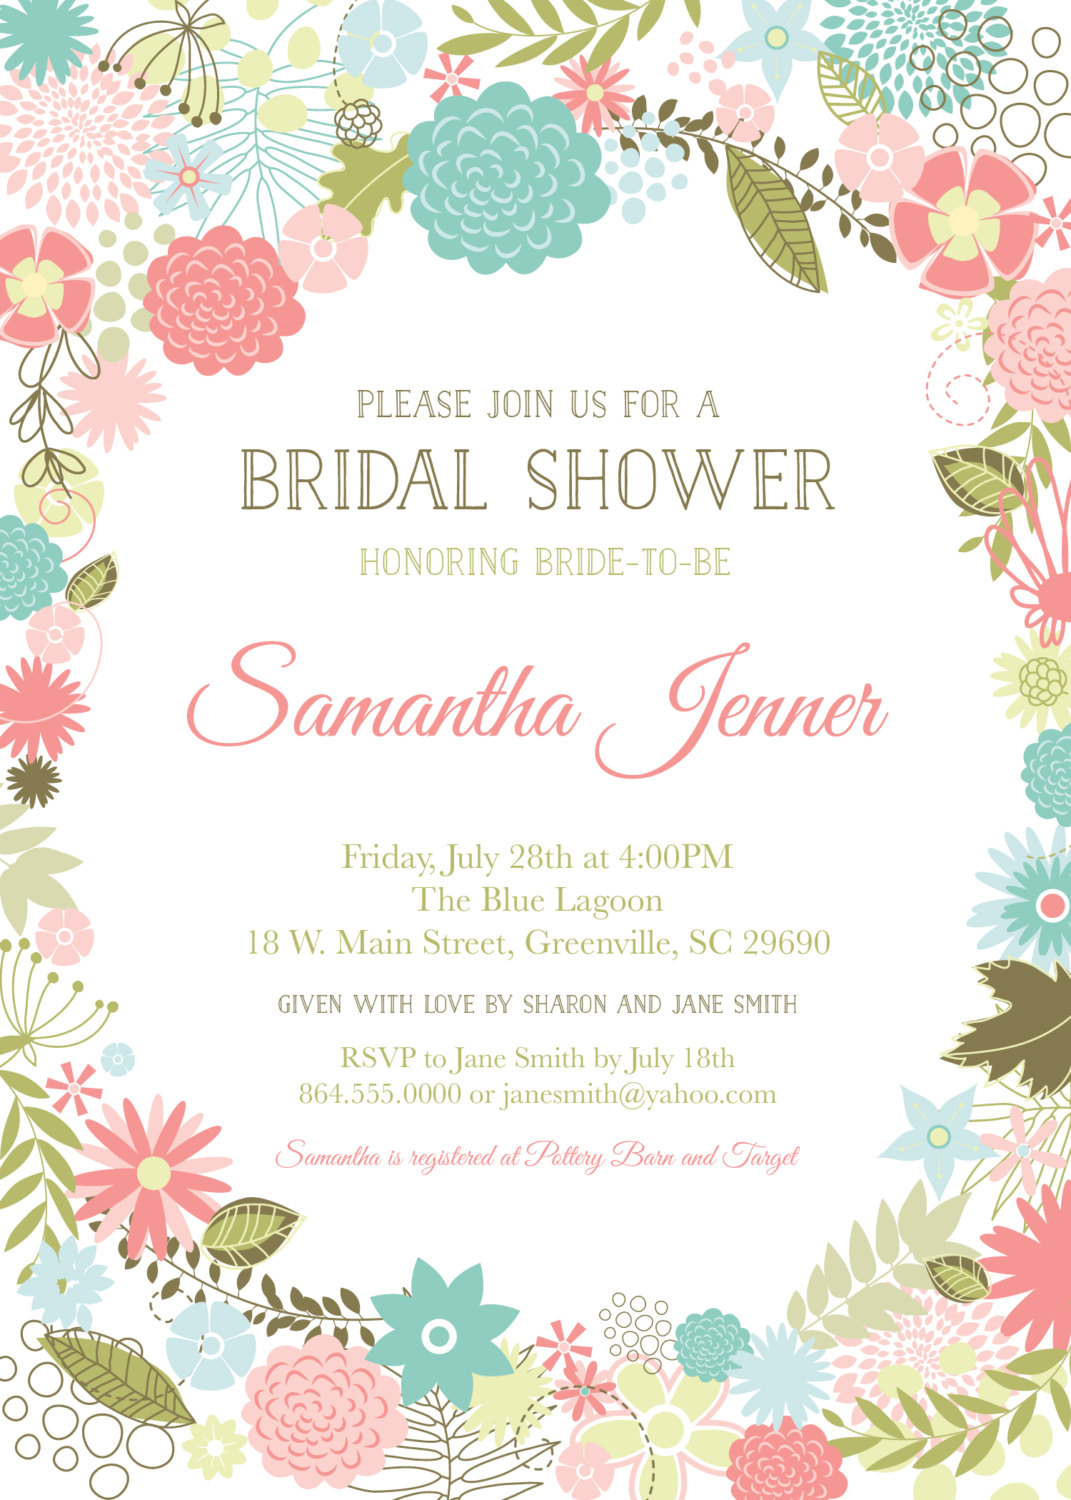 Retro modern flowers bridal baby shower invitations floral garden il fullxfull588354520 blpt small filmwisefo